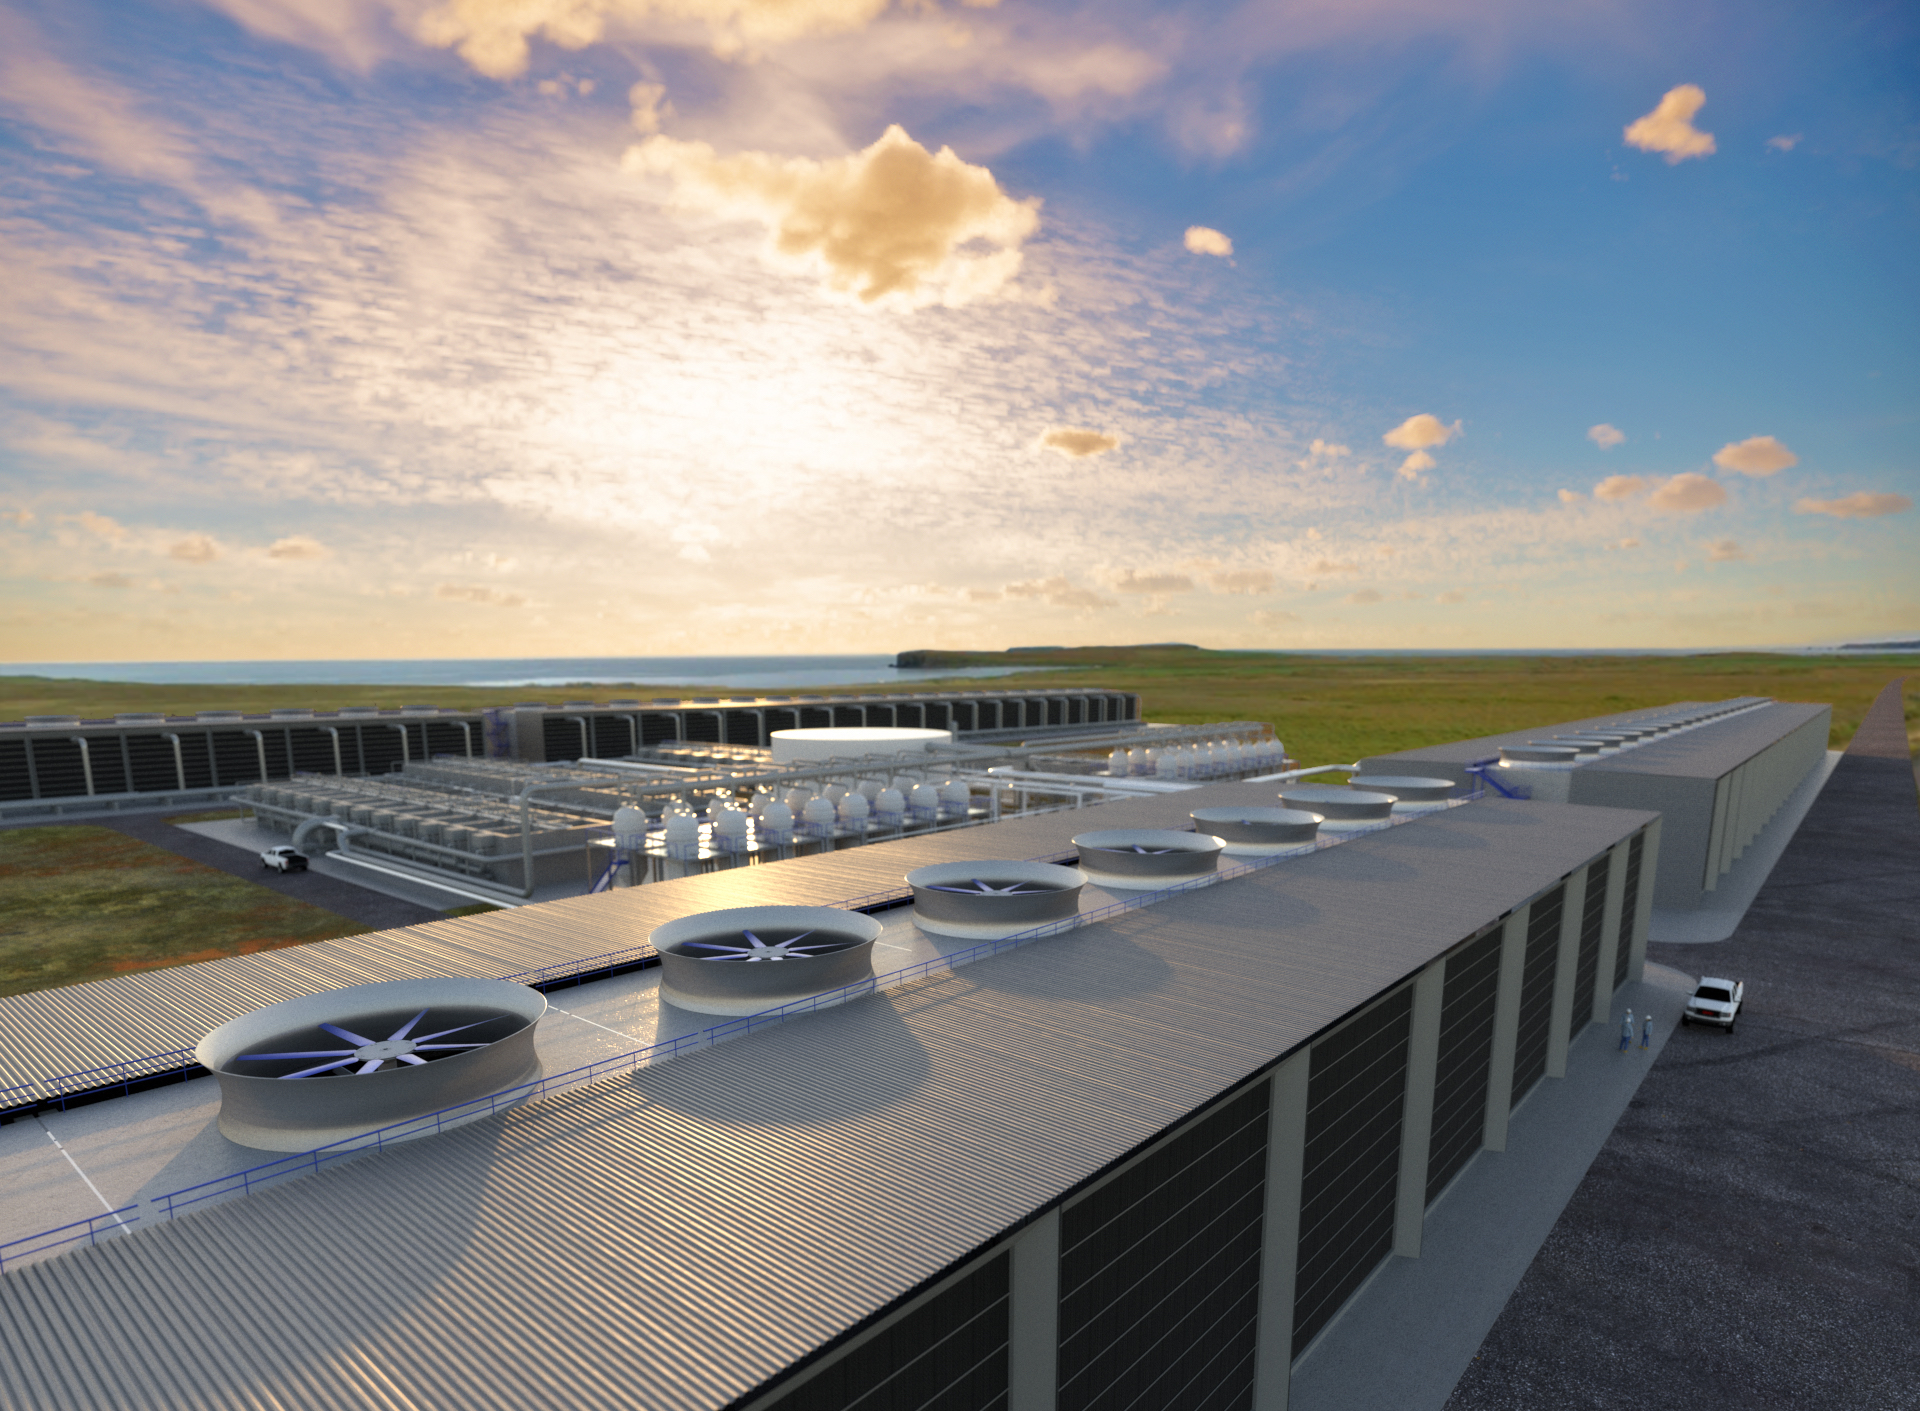 an artist rendering of the direct air capture plant showing a large building with big fans on top